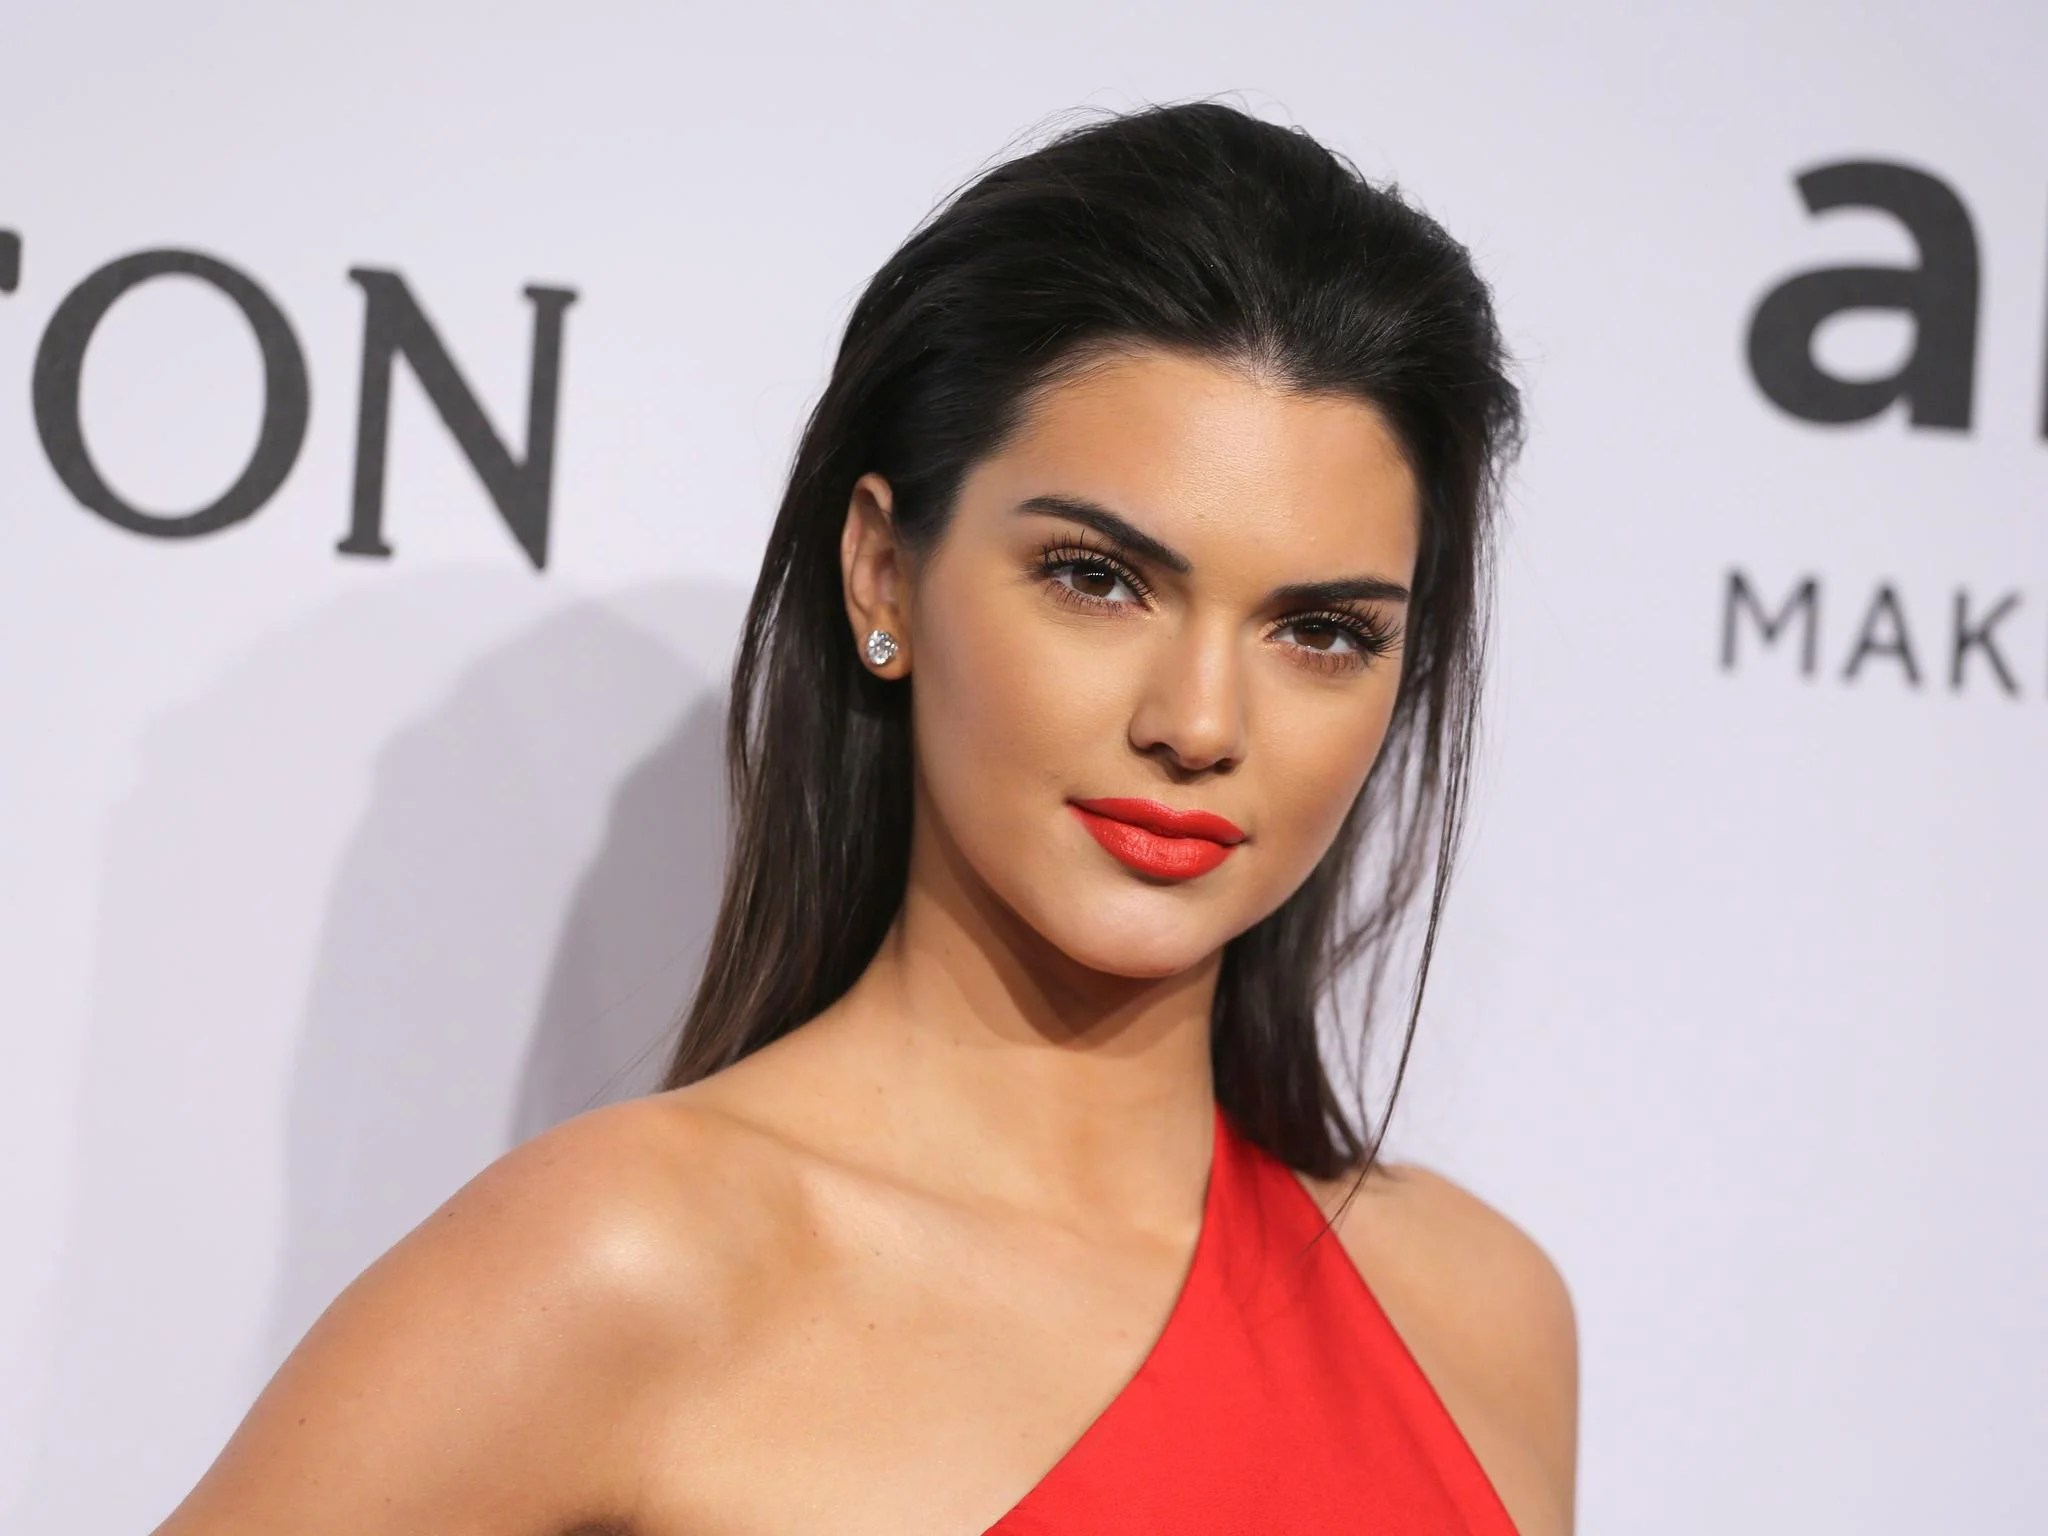 Kendall Jenner - narcissistic celebrities